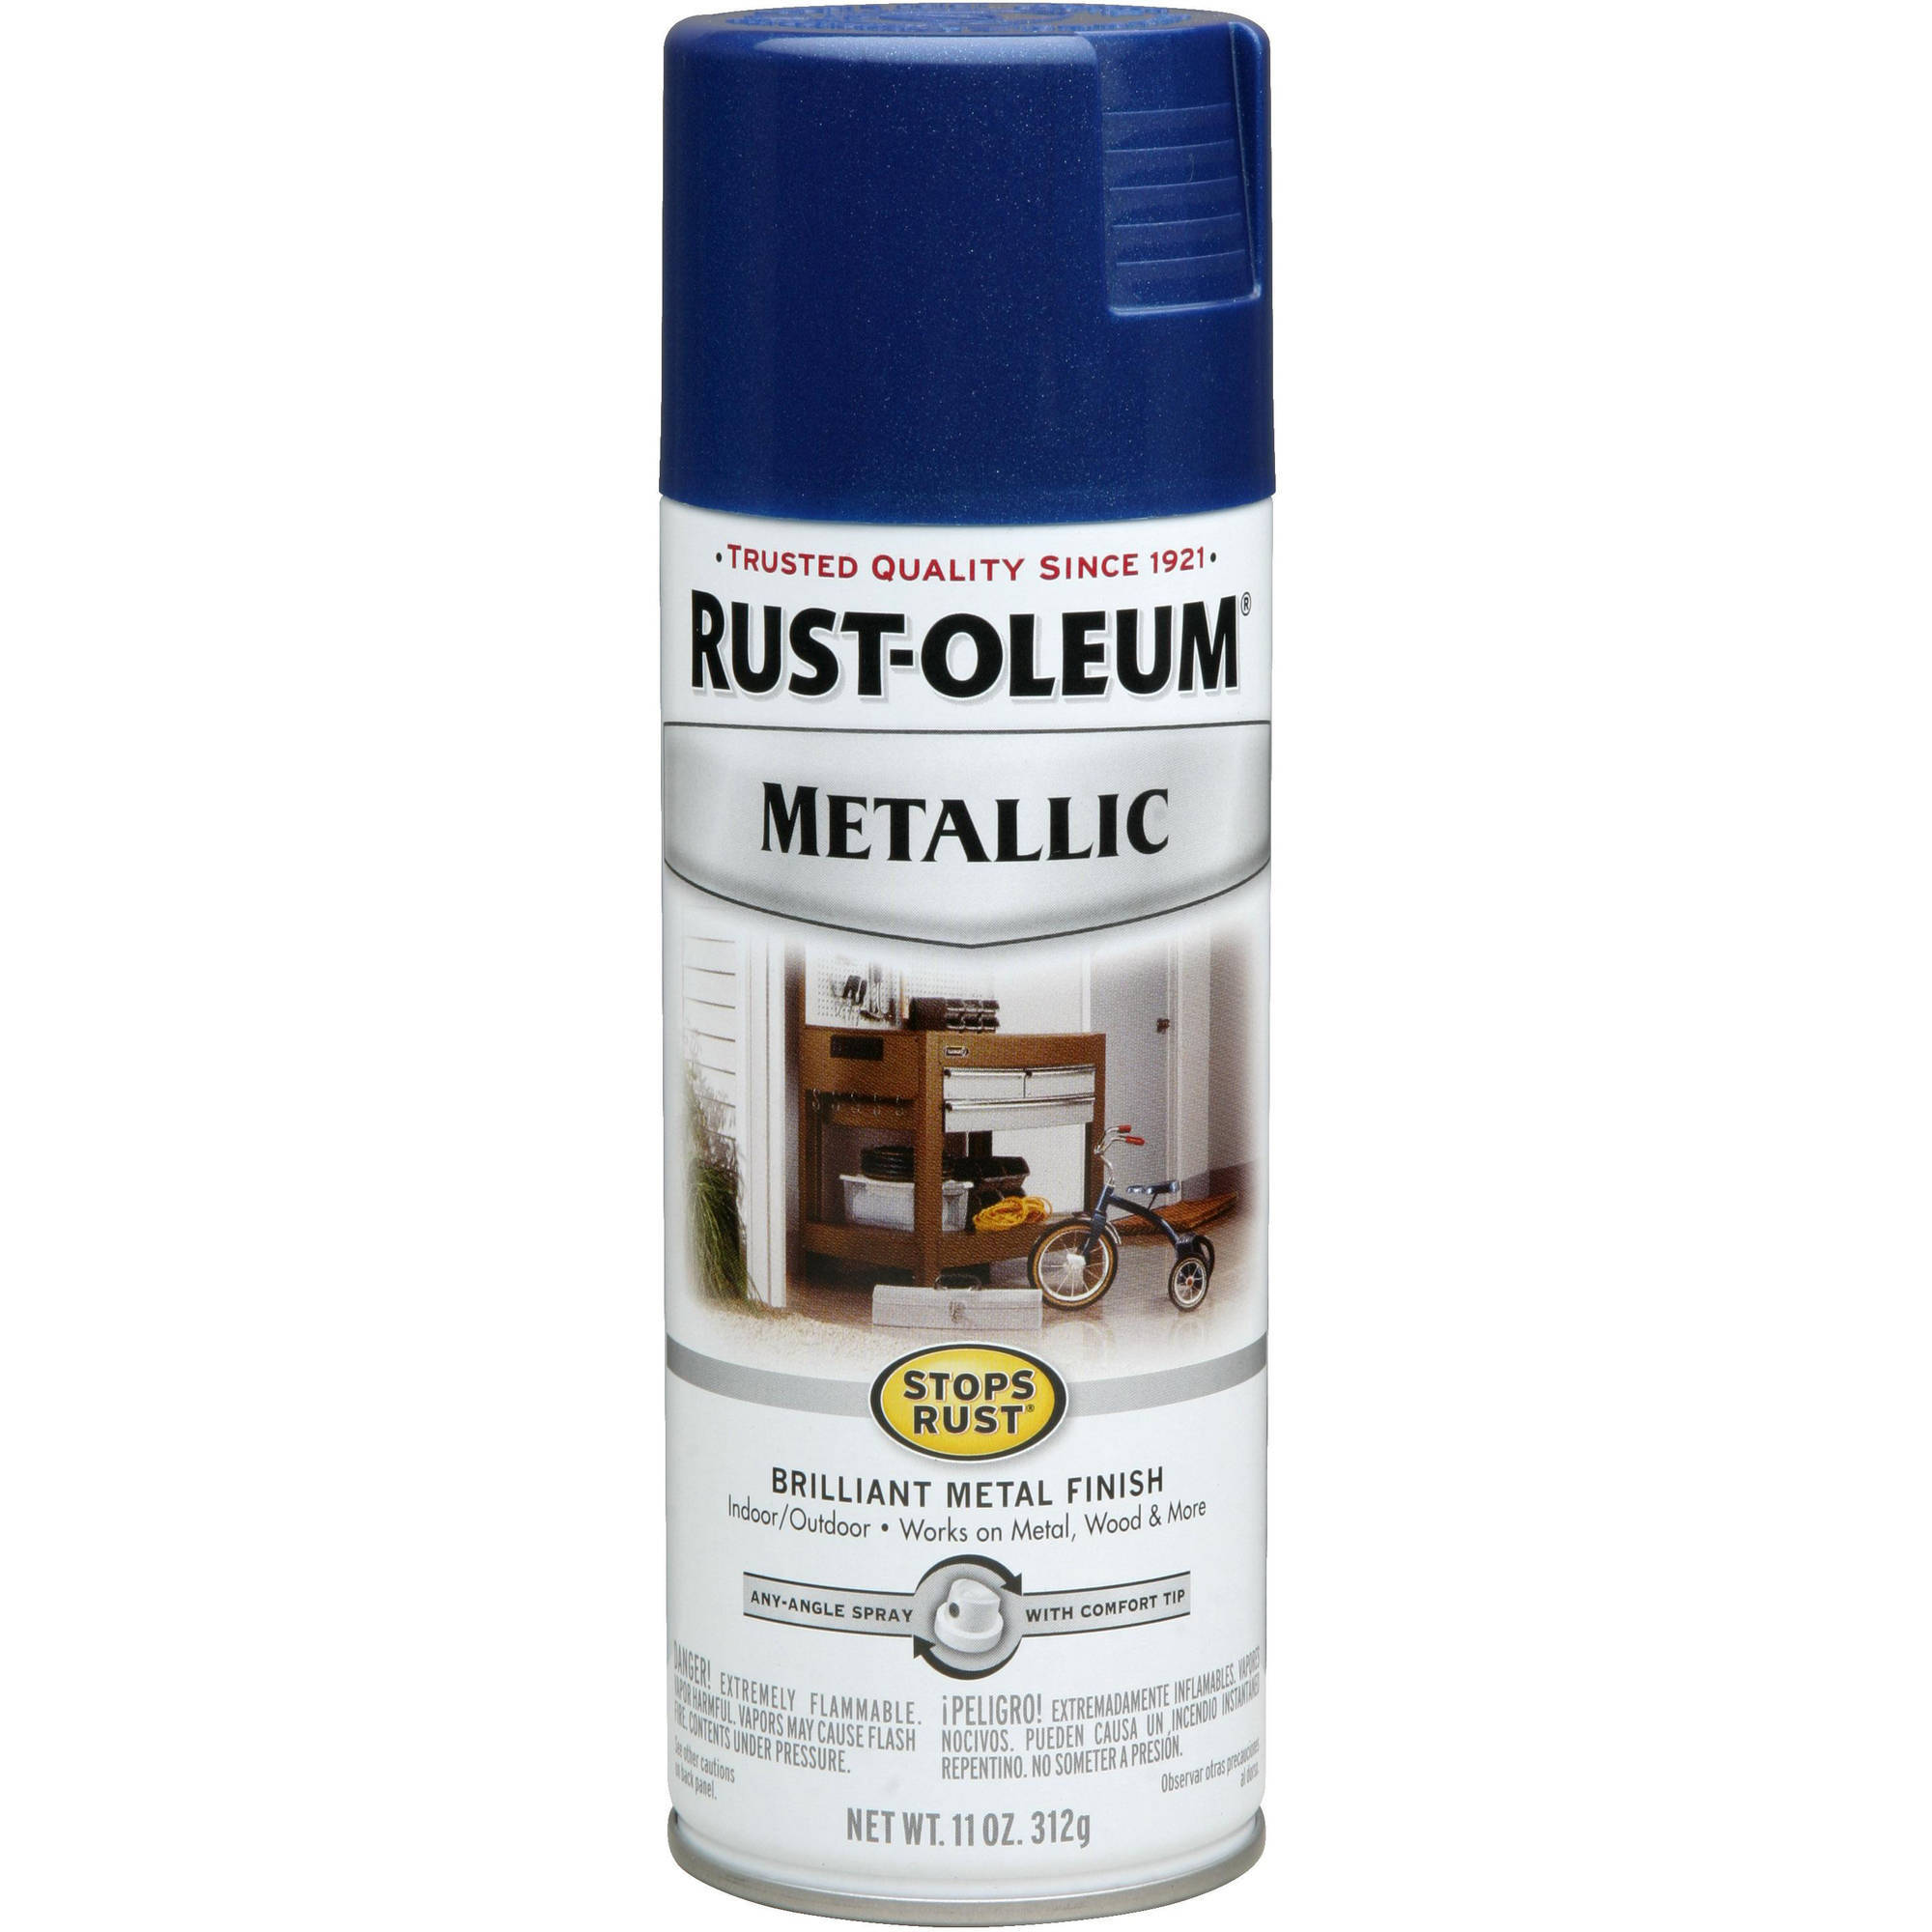 Rust-Oleum Metallic Spray